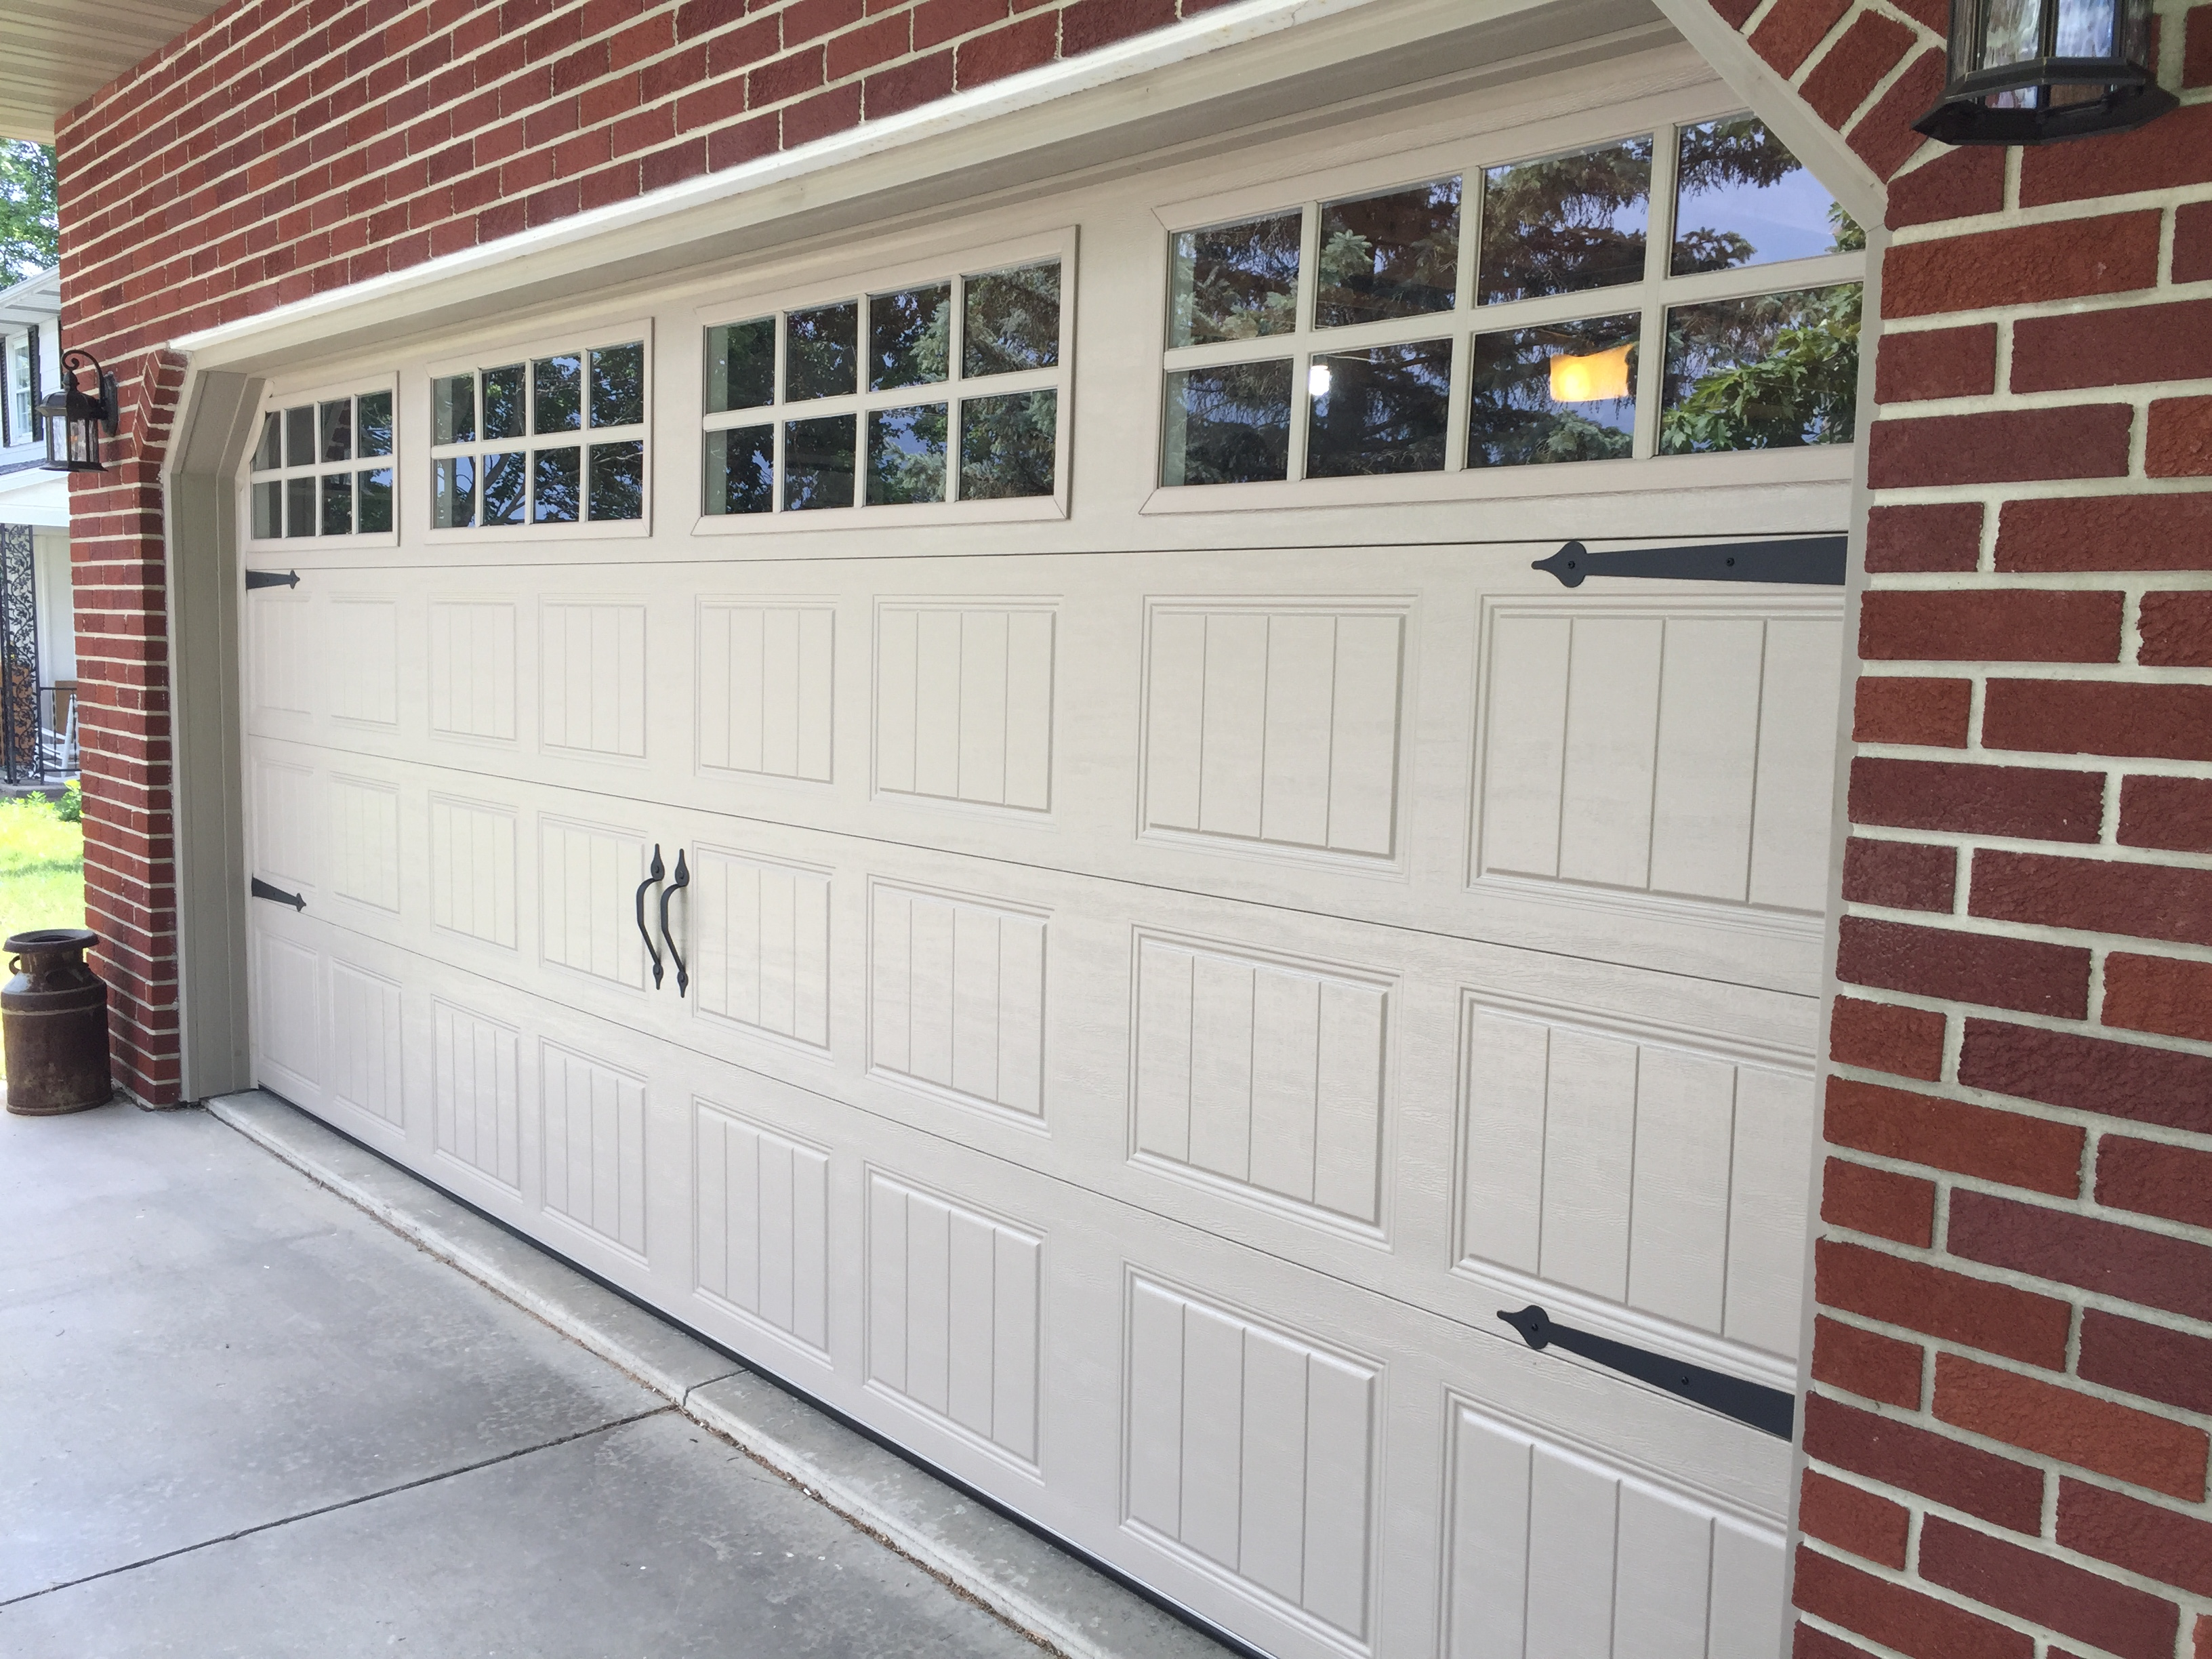 LOVE THE CARRIAGE DOOR LOOK! Itu0027s Quite Simple To Bring Back The Look Of  The Old Carriage Style Garage Doors With After Market Mounted Handles And  Faux ...